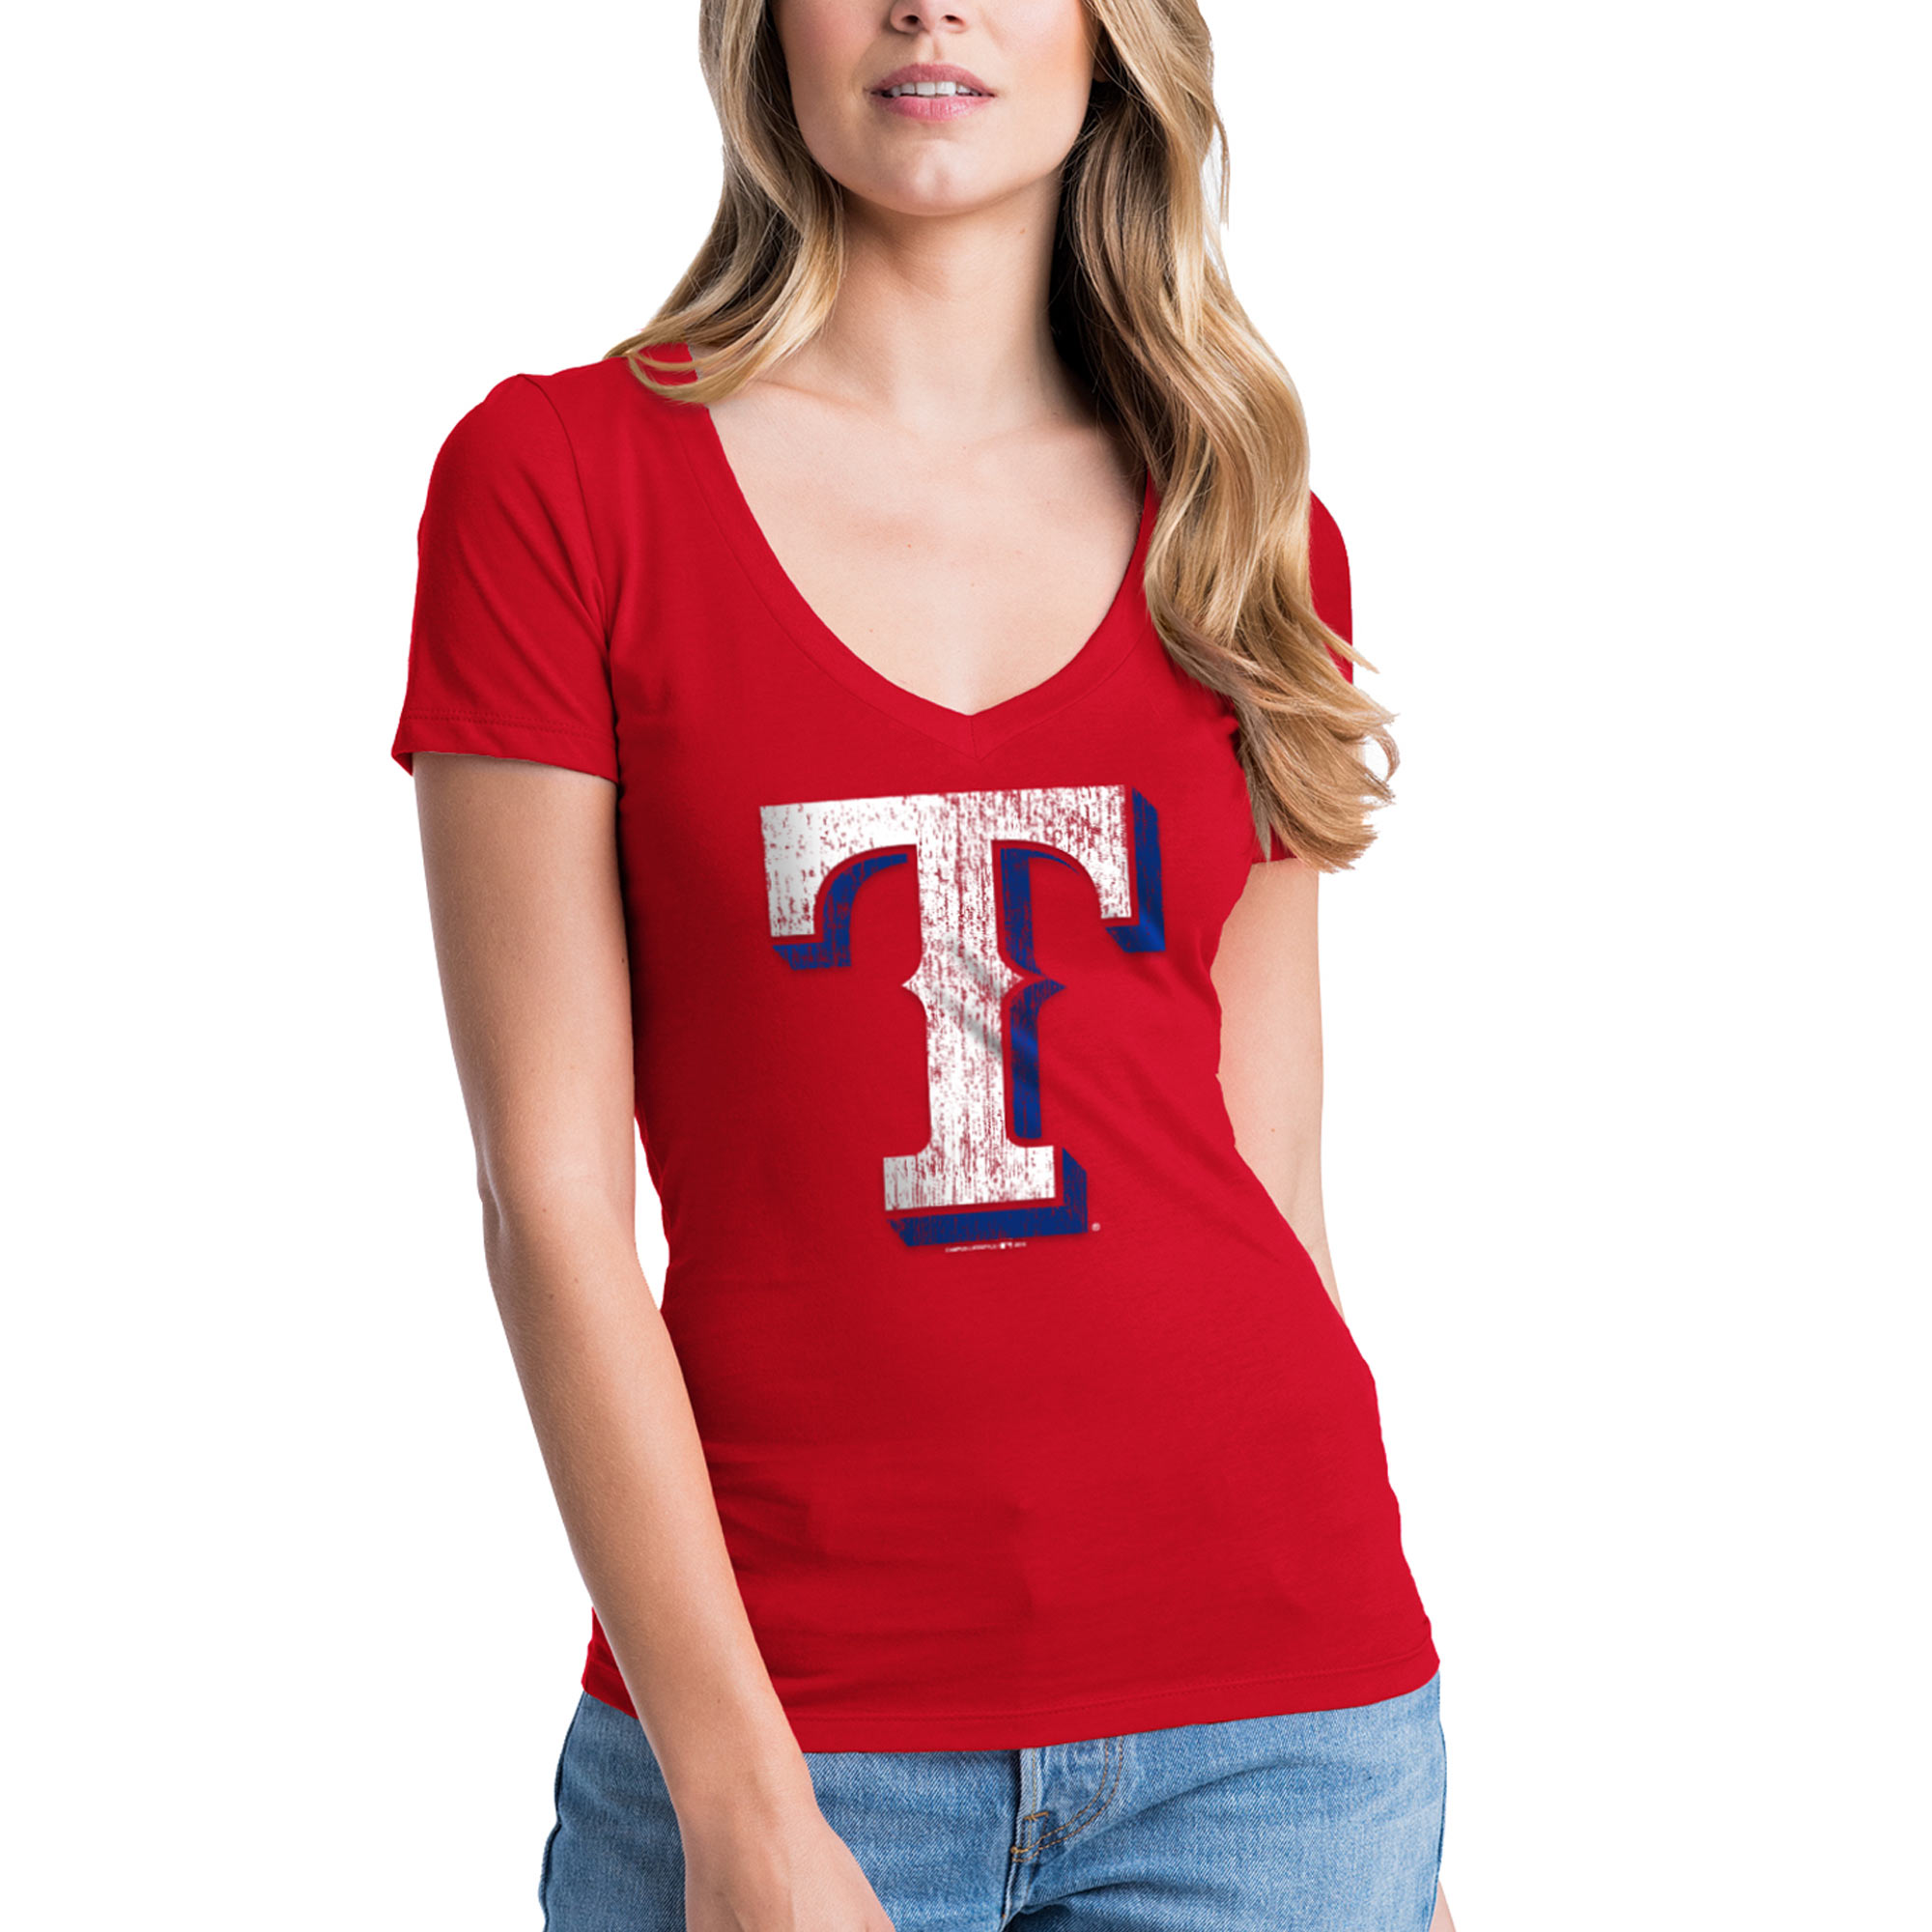 Texas Rangers New Era Women's V-Neck T-Shirt - Red